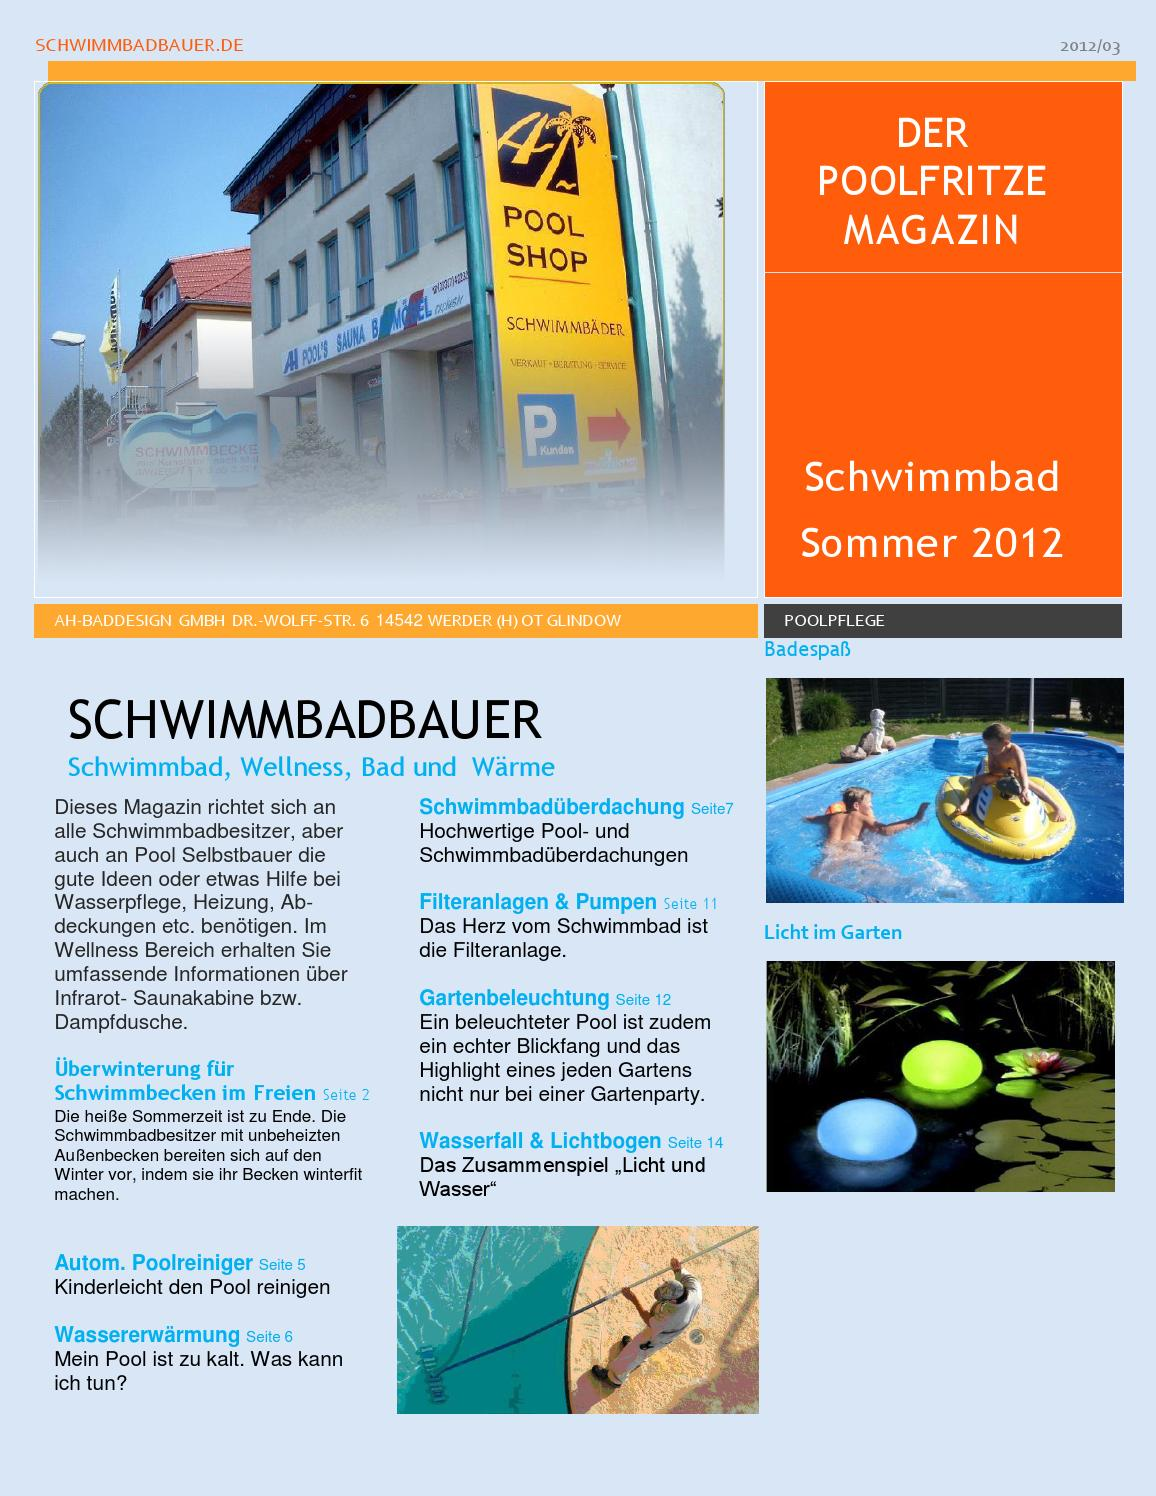 Pool Bodensauger Funktionsweise Schwimmbadbau Poolfritze Magazin Sommer By Schwimmbadbauer Issuu